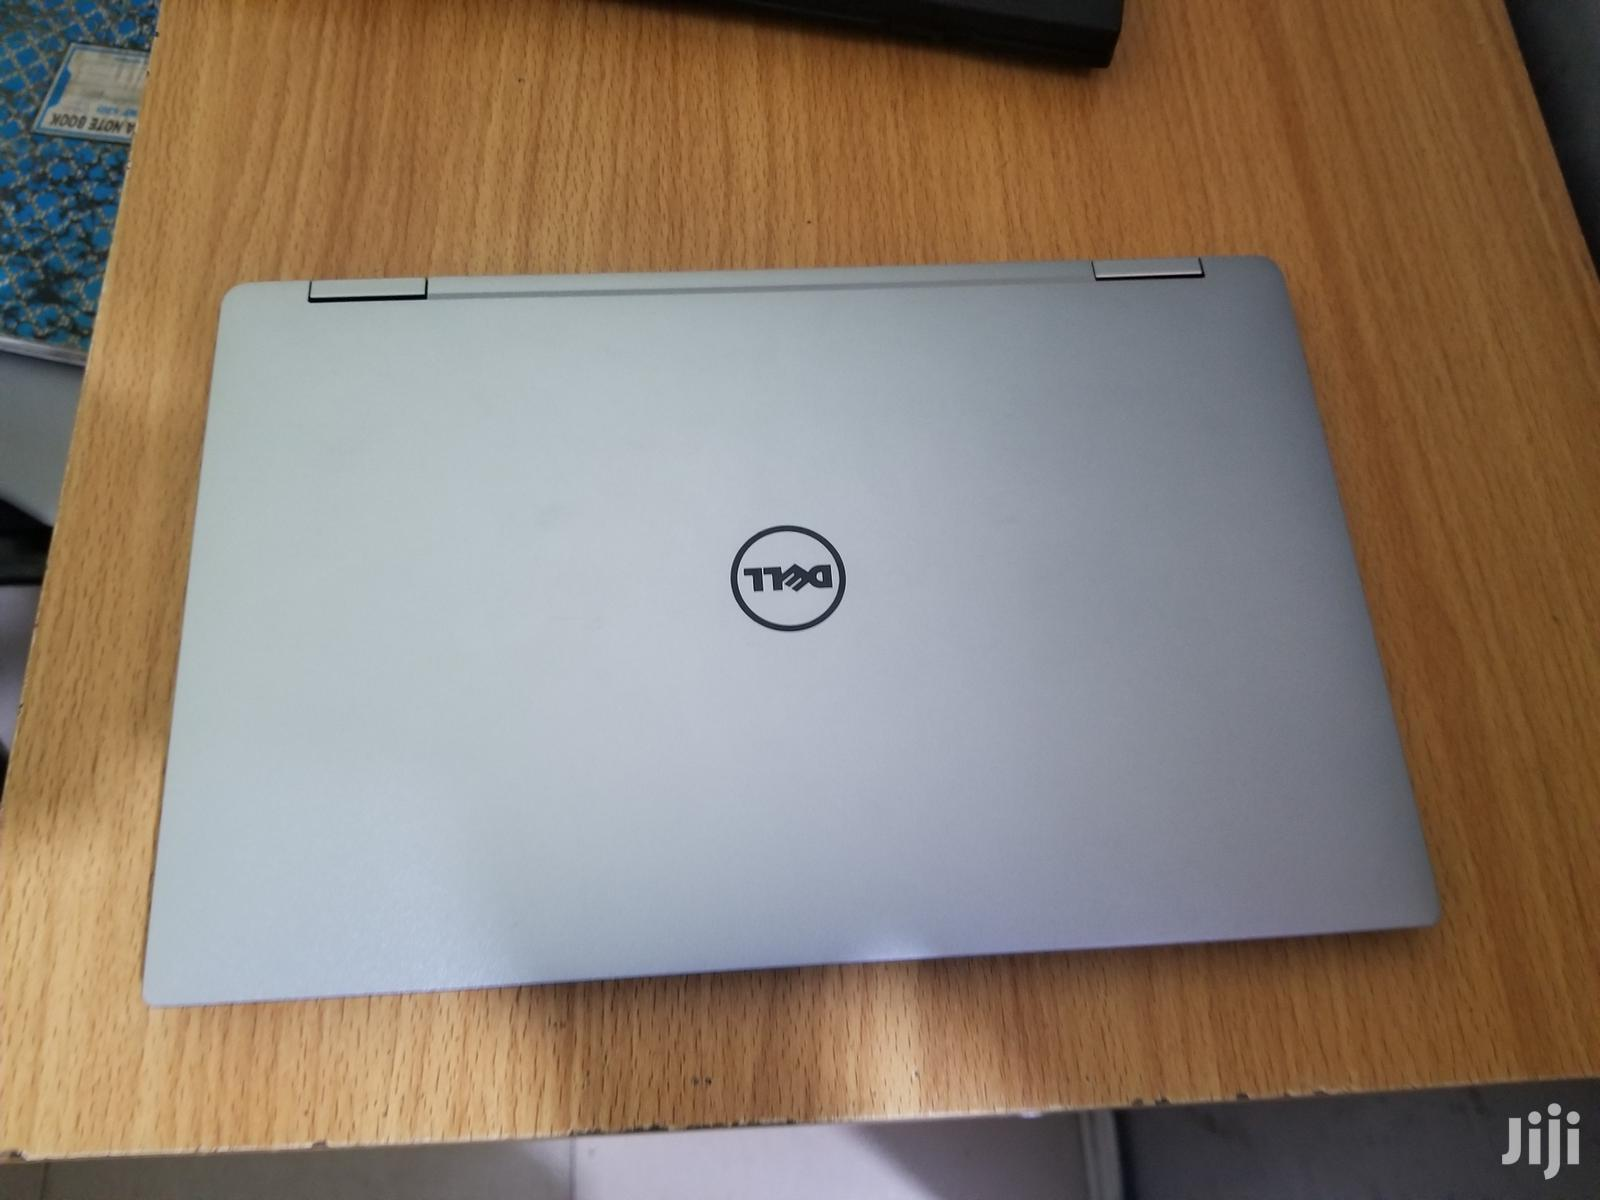 Uk Use Dell Xps 13 X360 Core I7 7th 16gb Ram Laptop | Laptops & Computers for sale in Ikeja, Lagos State, Nigeria